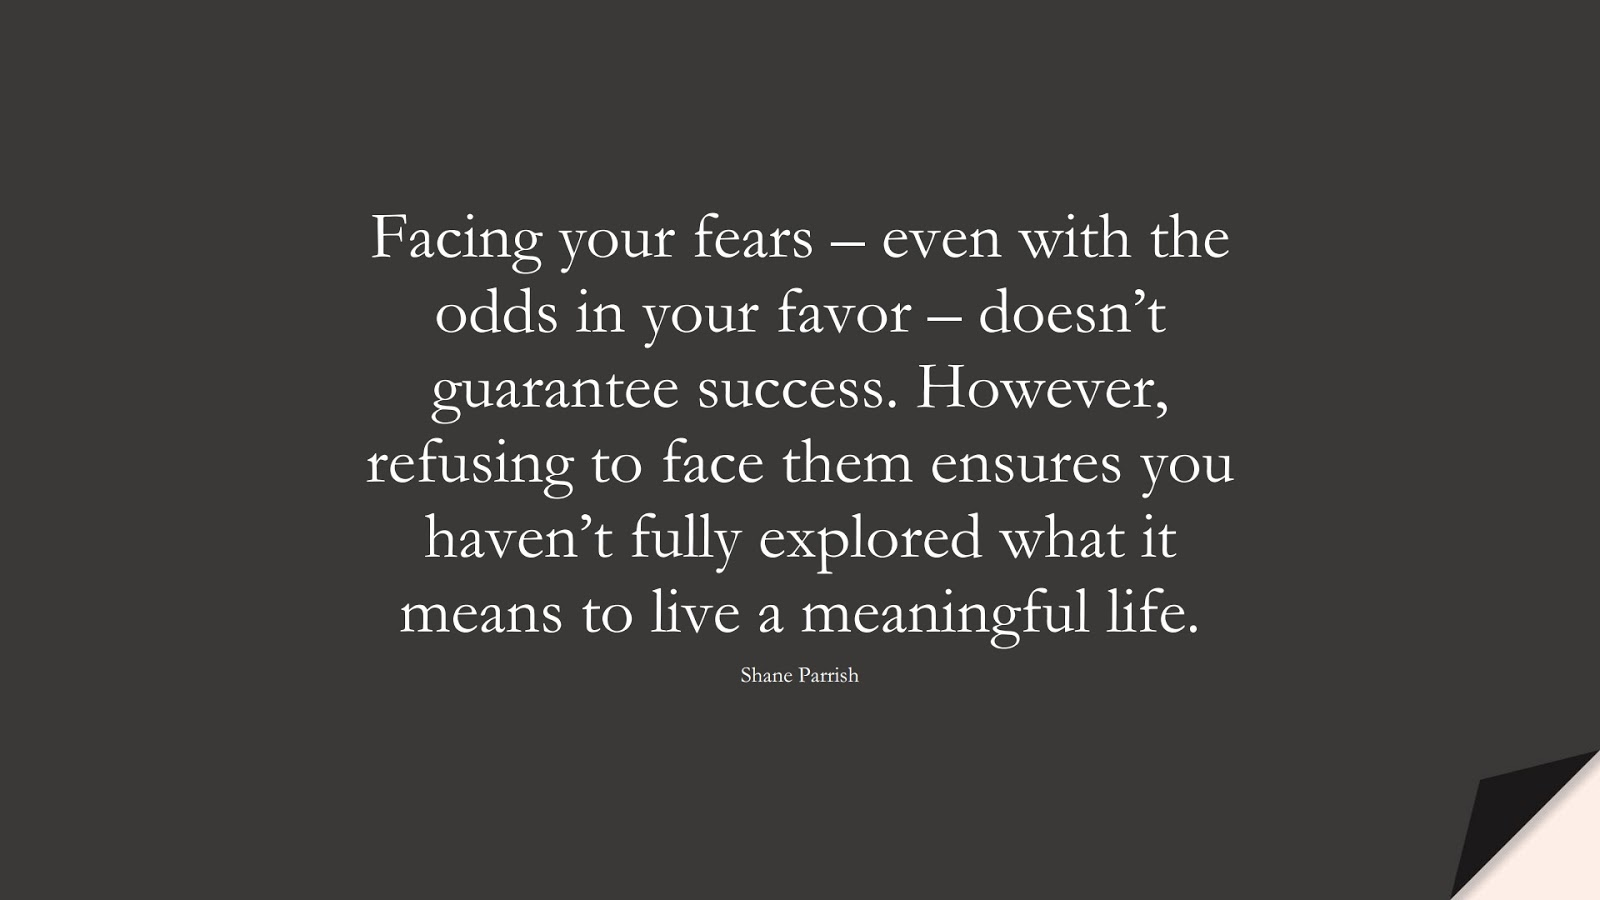 Facing your fears – even with the odds in your favor – doesn't guarantee success. However, refusing to face them ensures you haven't fully explored what it means to live a meaningful life. (Shane Parrish);  #FearQuotes